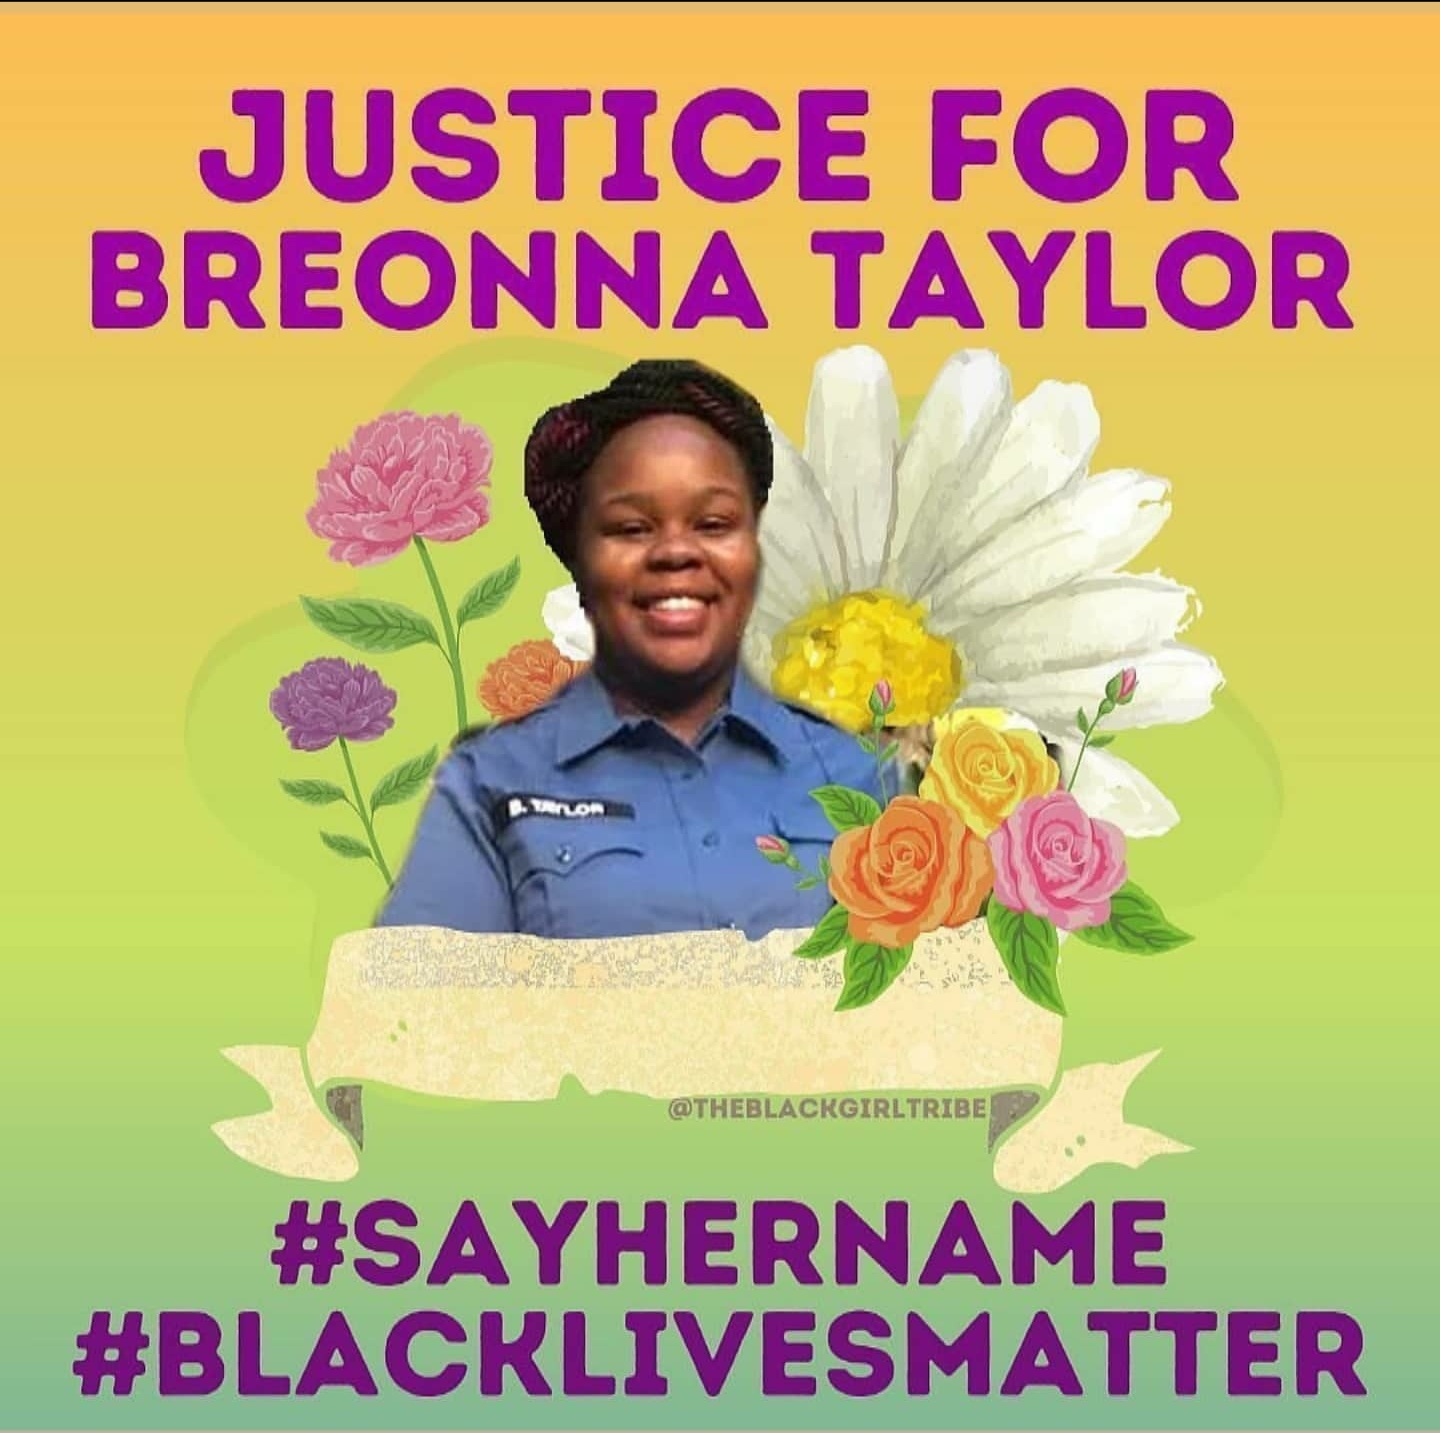 Justice For Breonna Taylor Kpfa